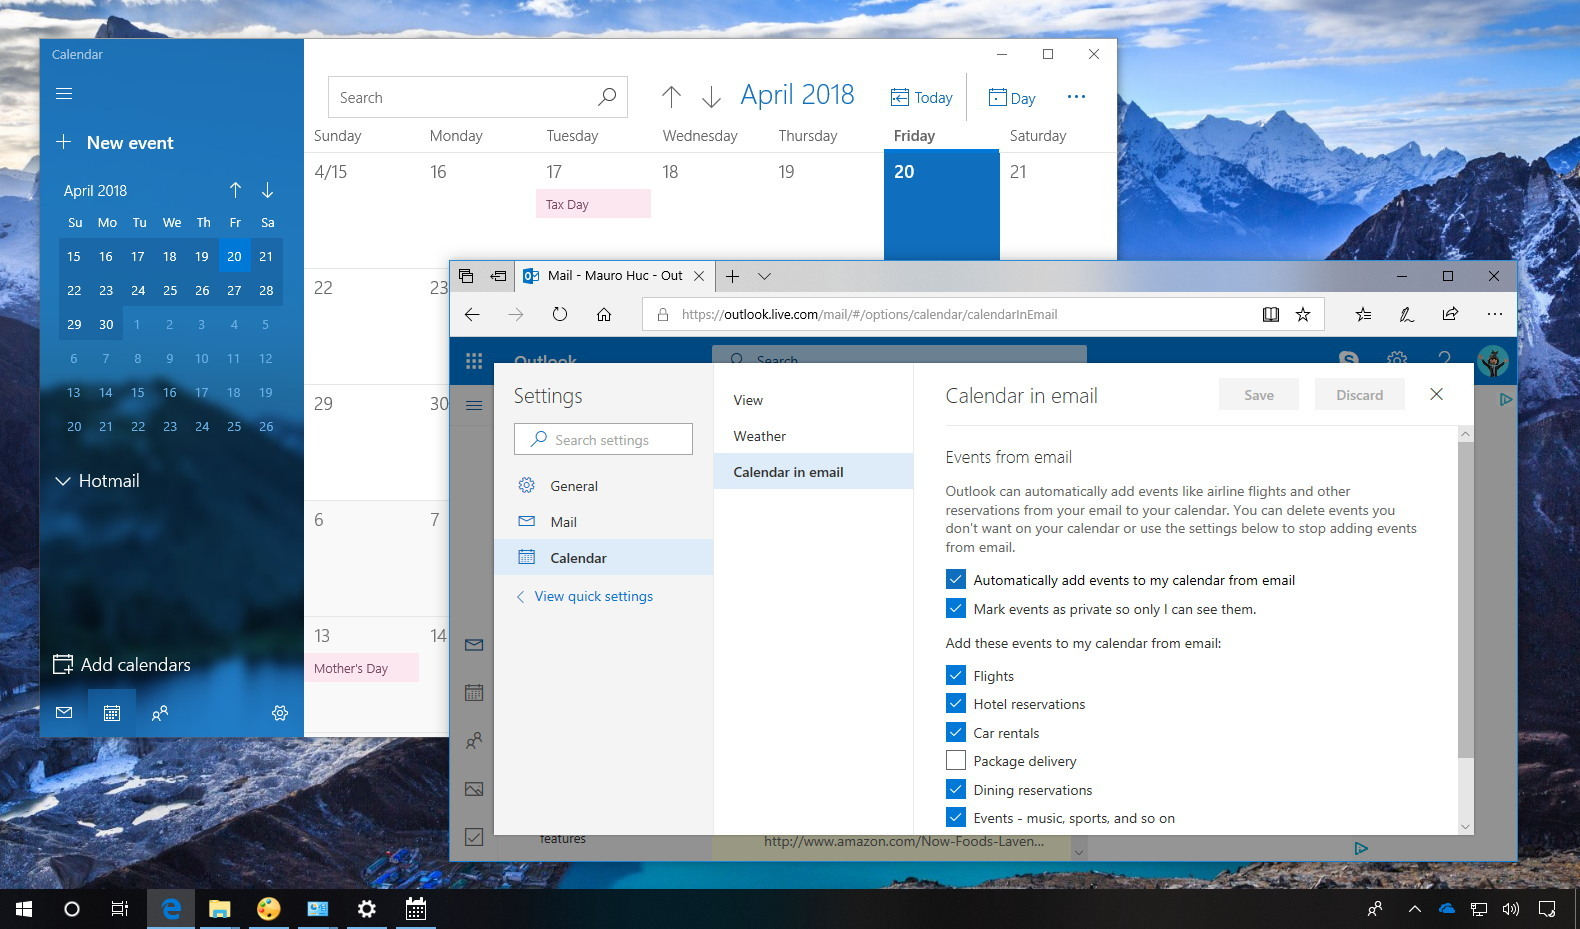 Disable Outlook calendar events from emails